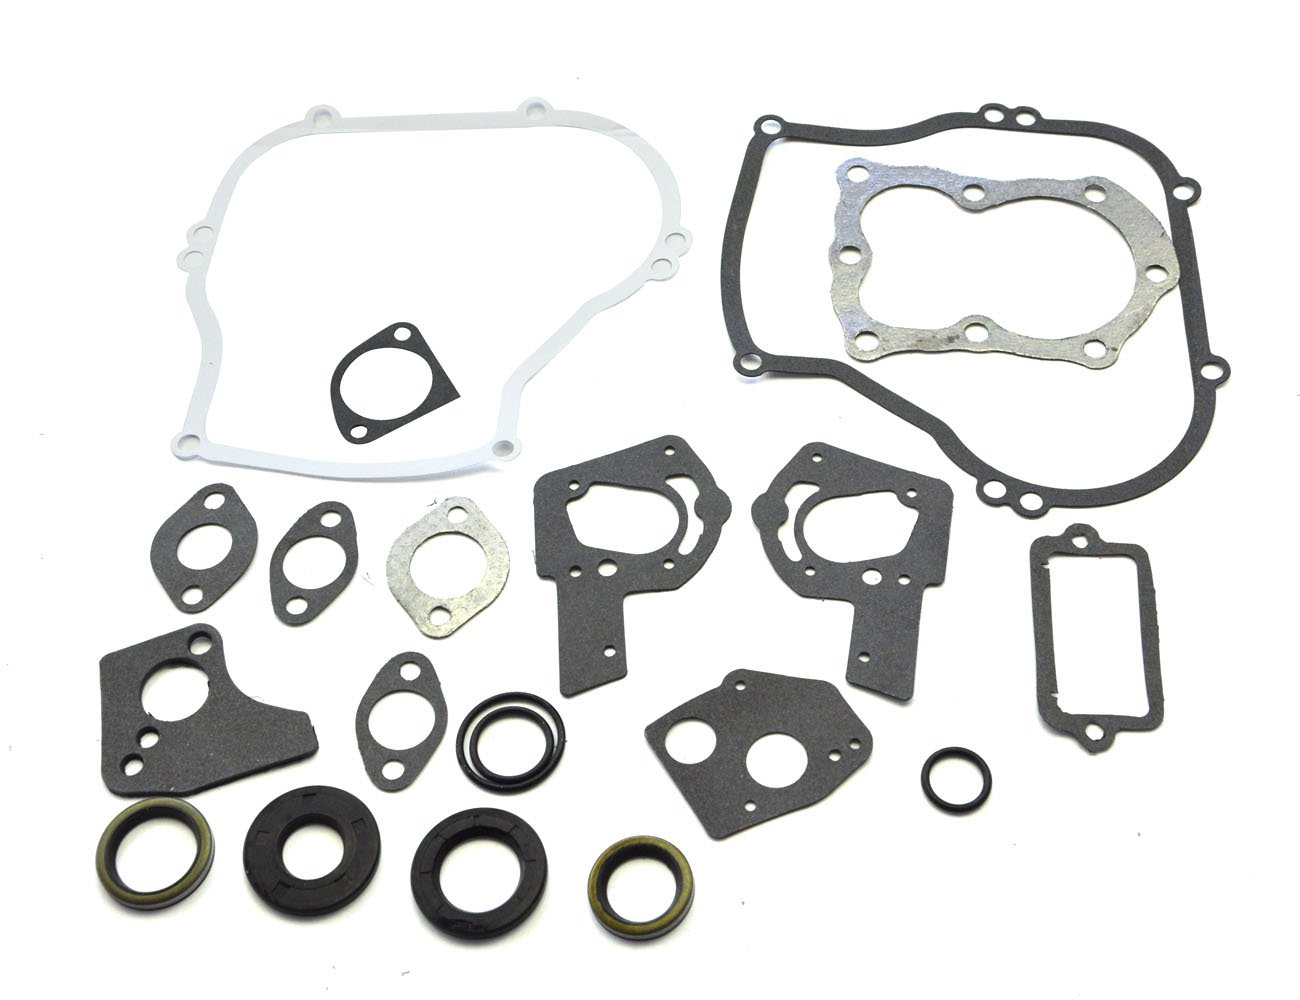 New Engine Gasket Set For Briggs /& Stratton 495603 Replaces 397145 297615